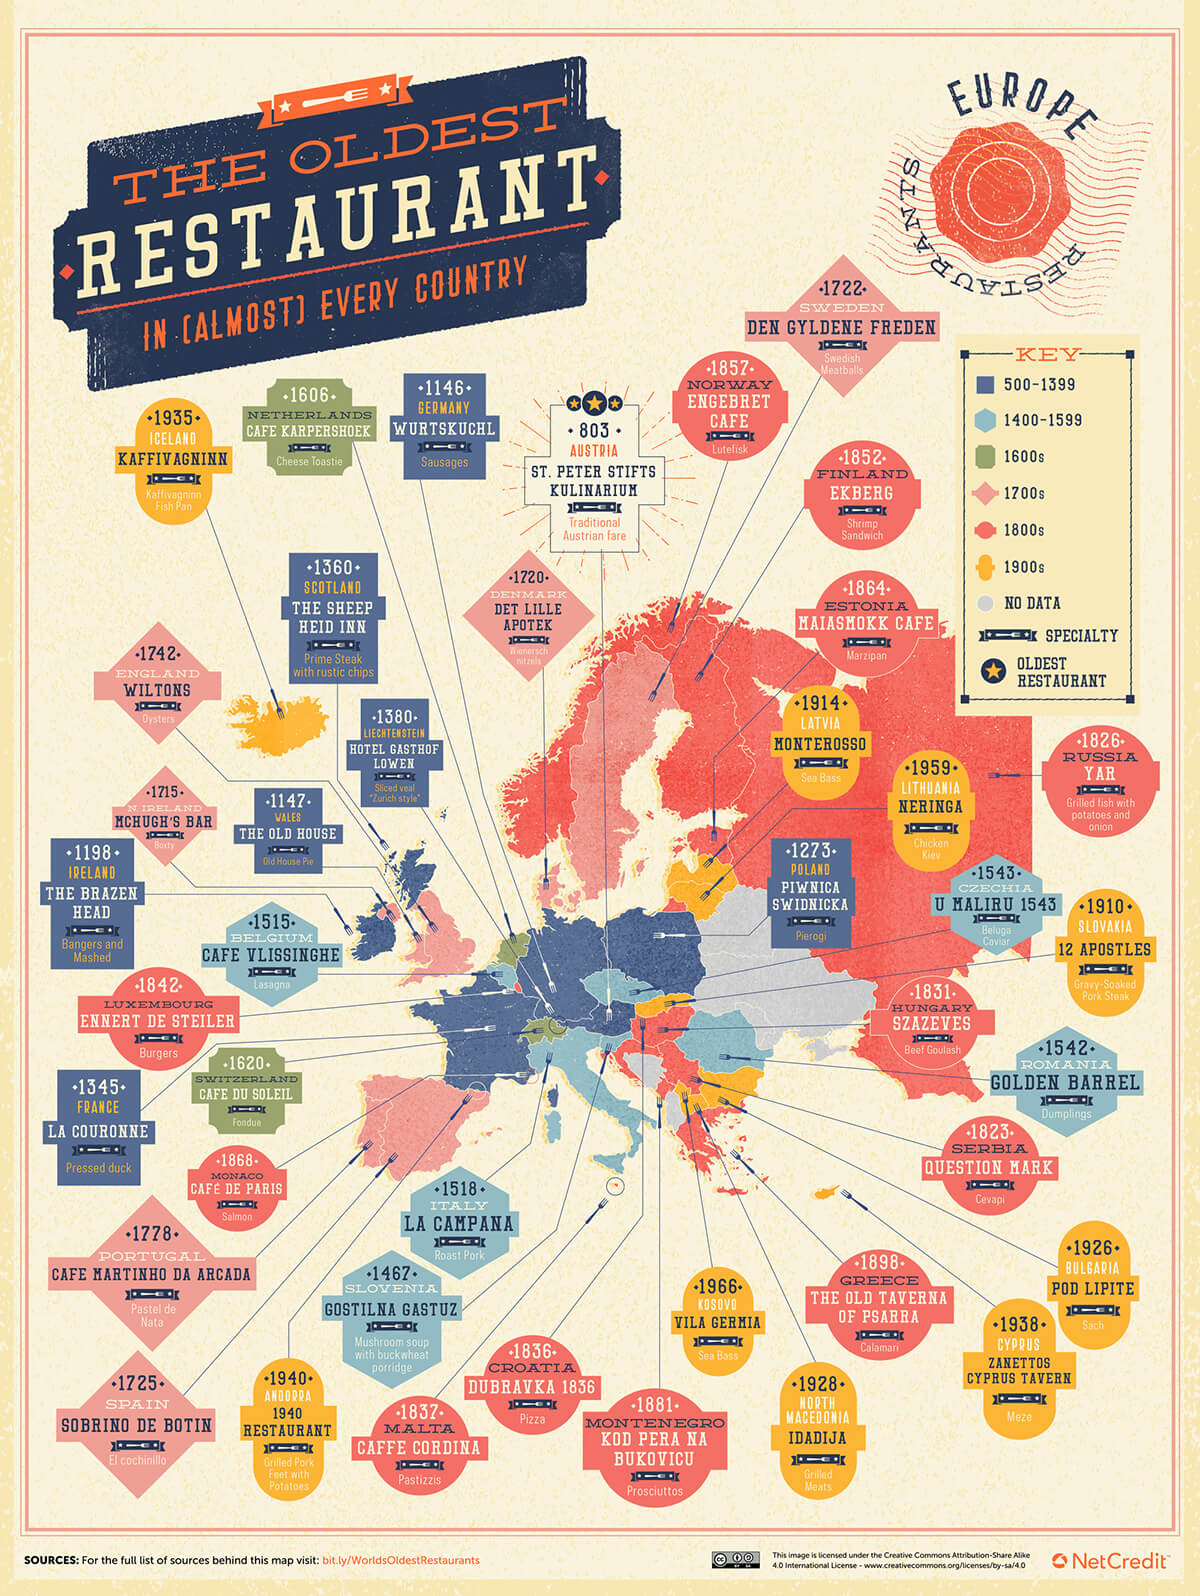 03_The-Oldest-Restaurant-in-Almost-Every-Country_Europe.jpg